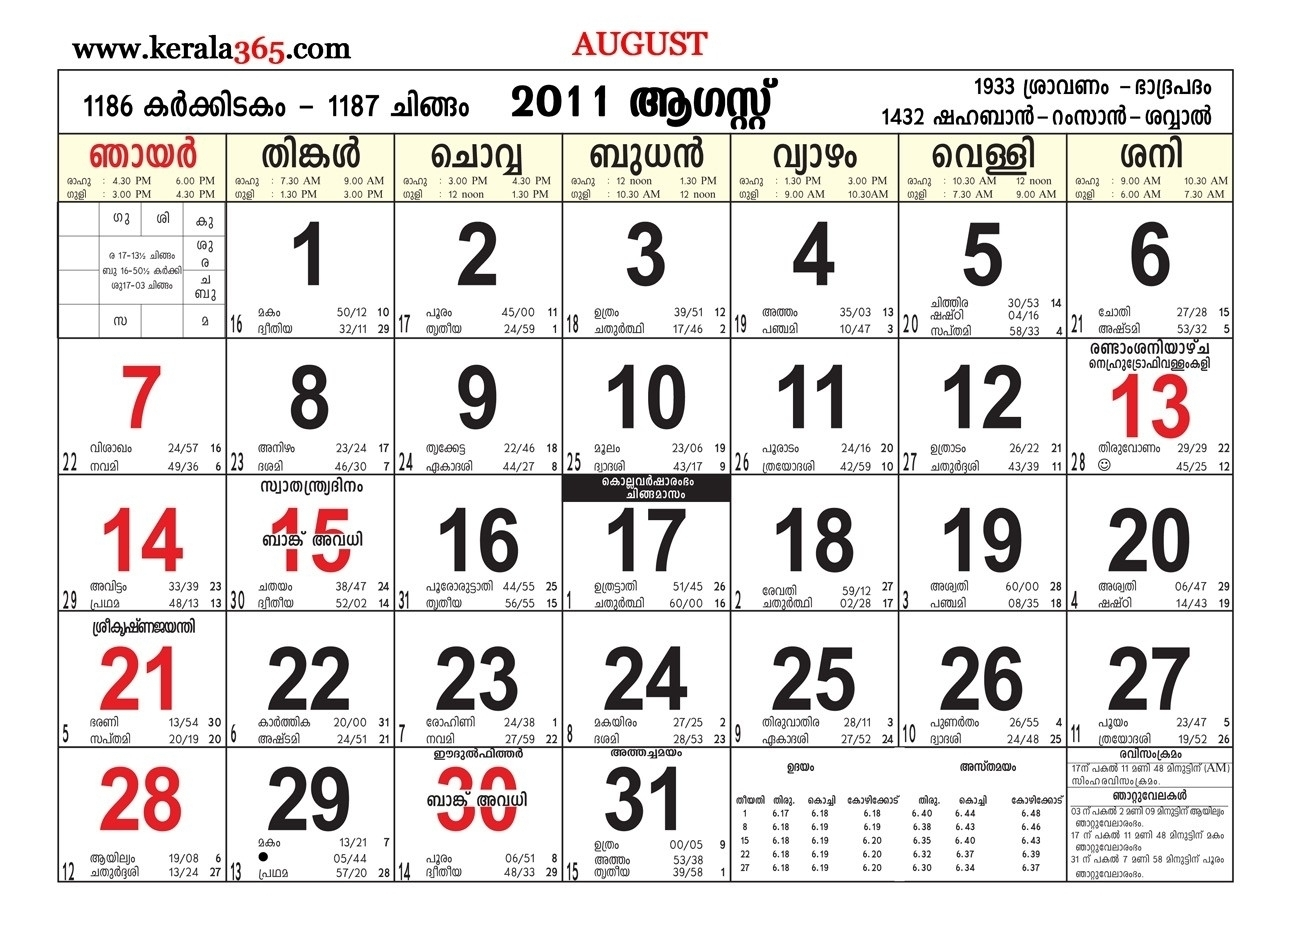 1996 August 29 Malayalam Calendar | Template Calendar Printable regarding 1996 August 29 Malayalam Calendar